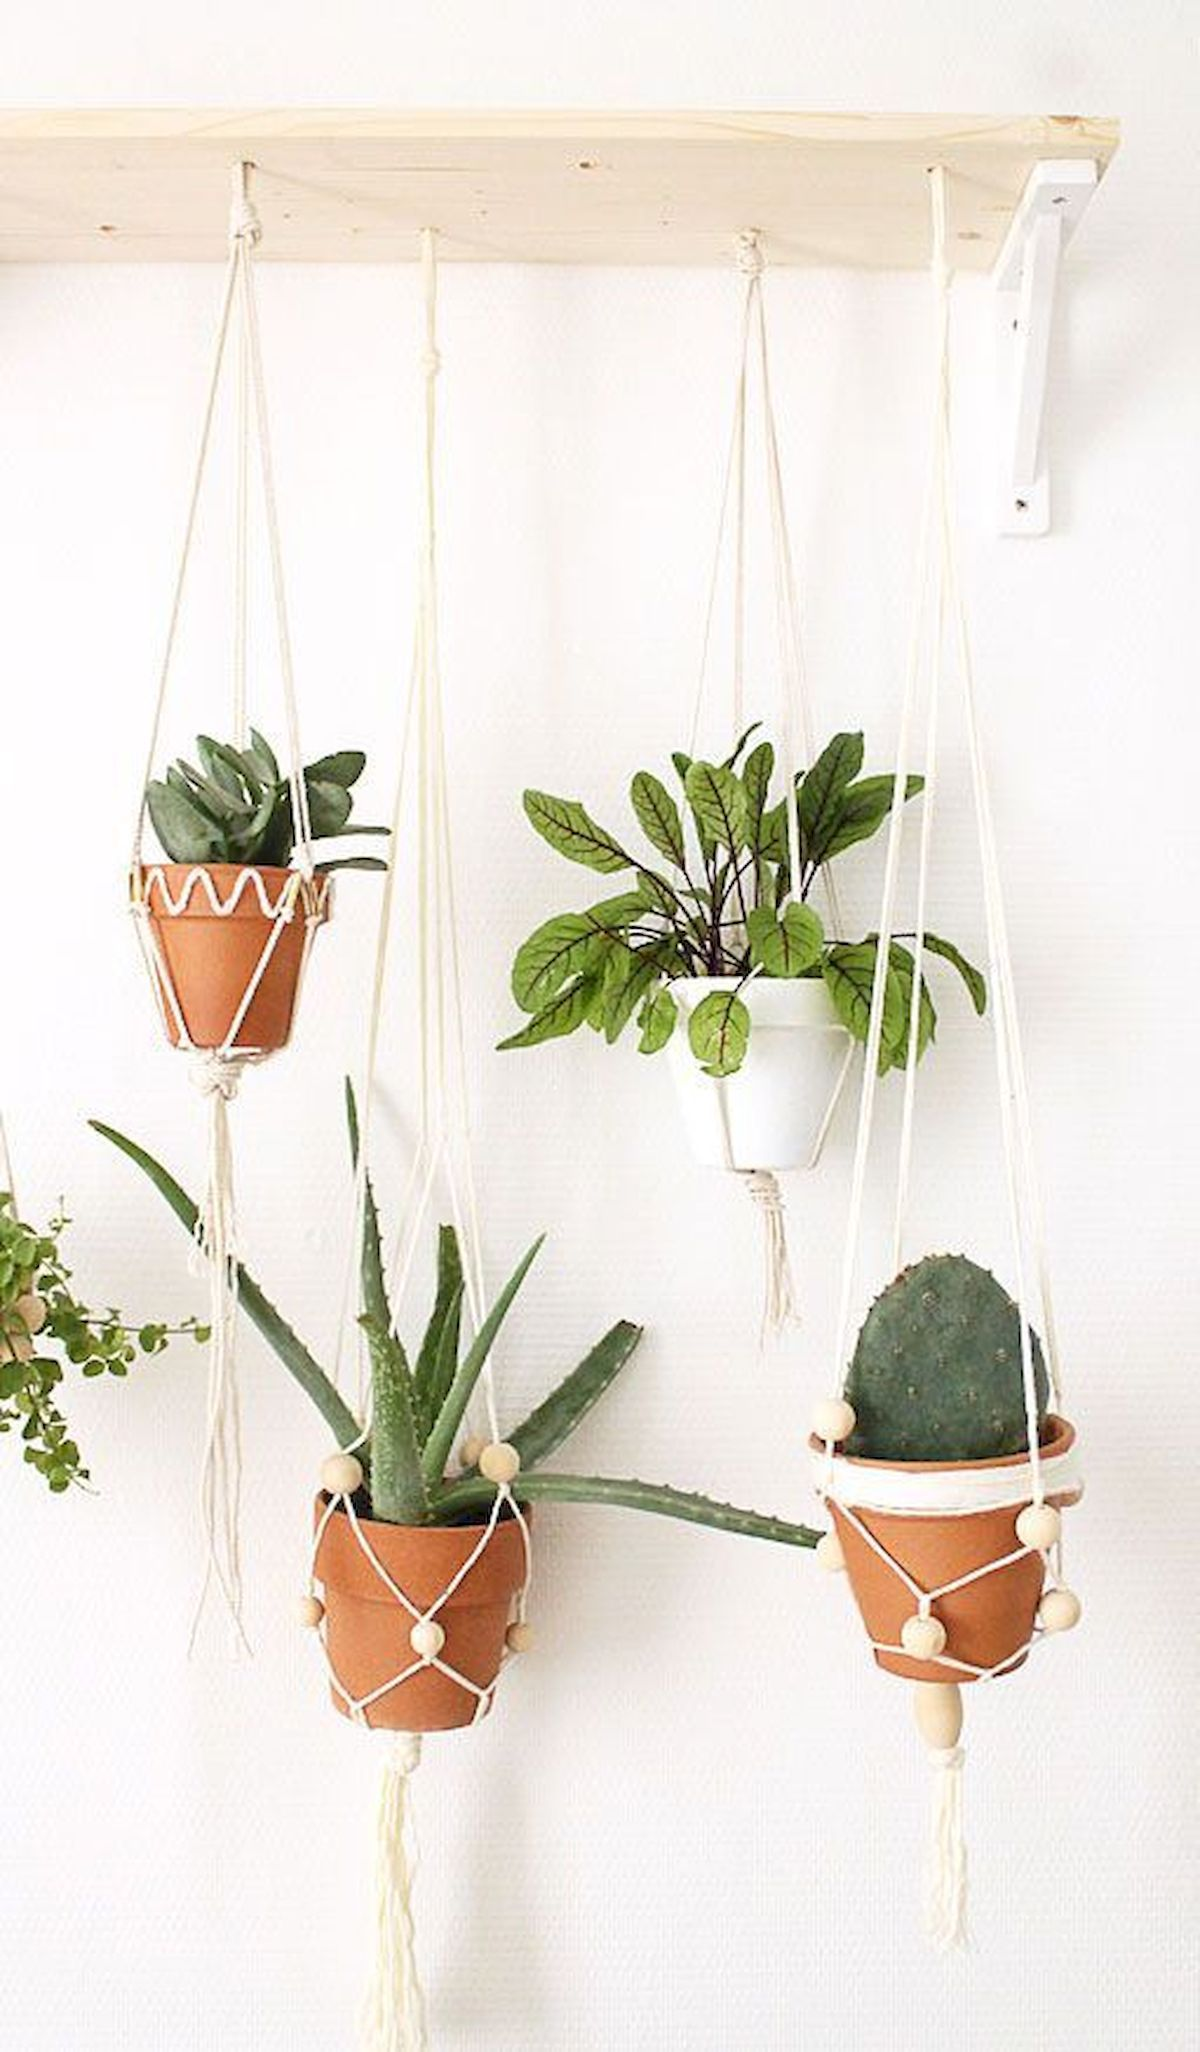 30 Cute Hanging Plants to Decorate Your Interior Home -   9 hanging plants Interieur ideas